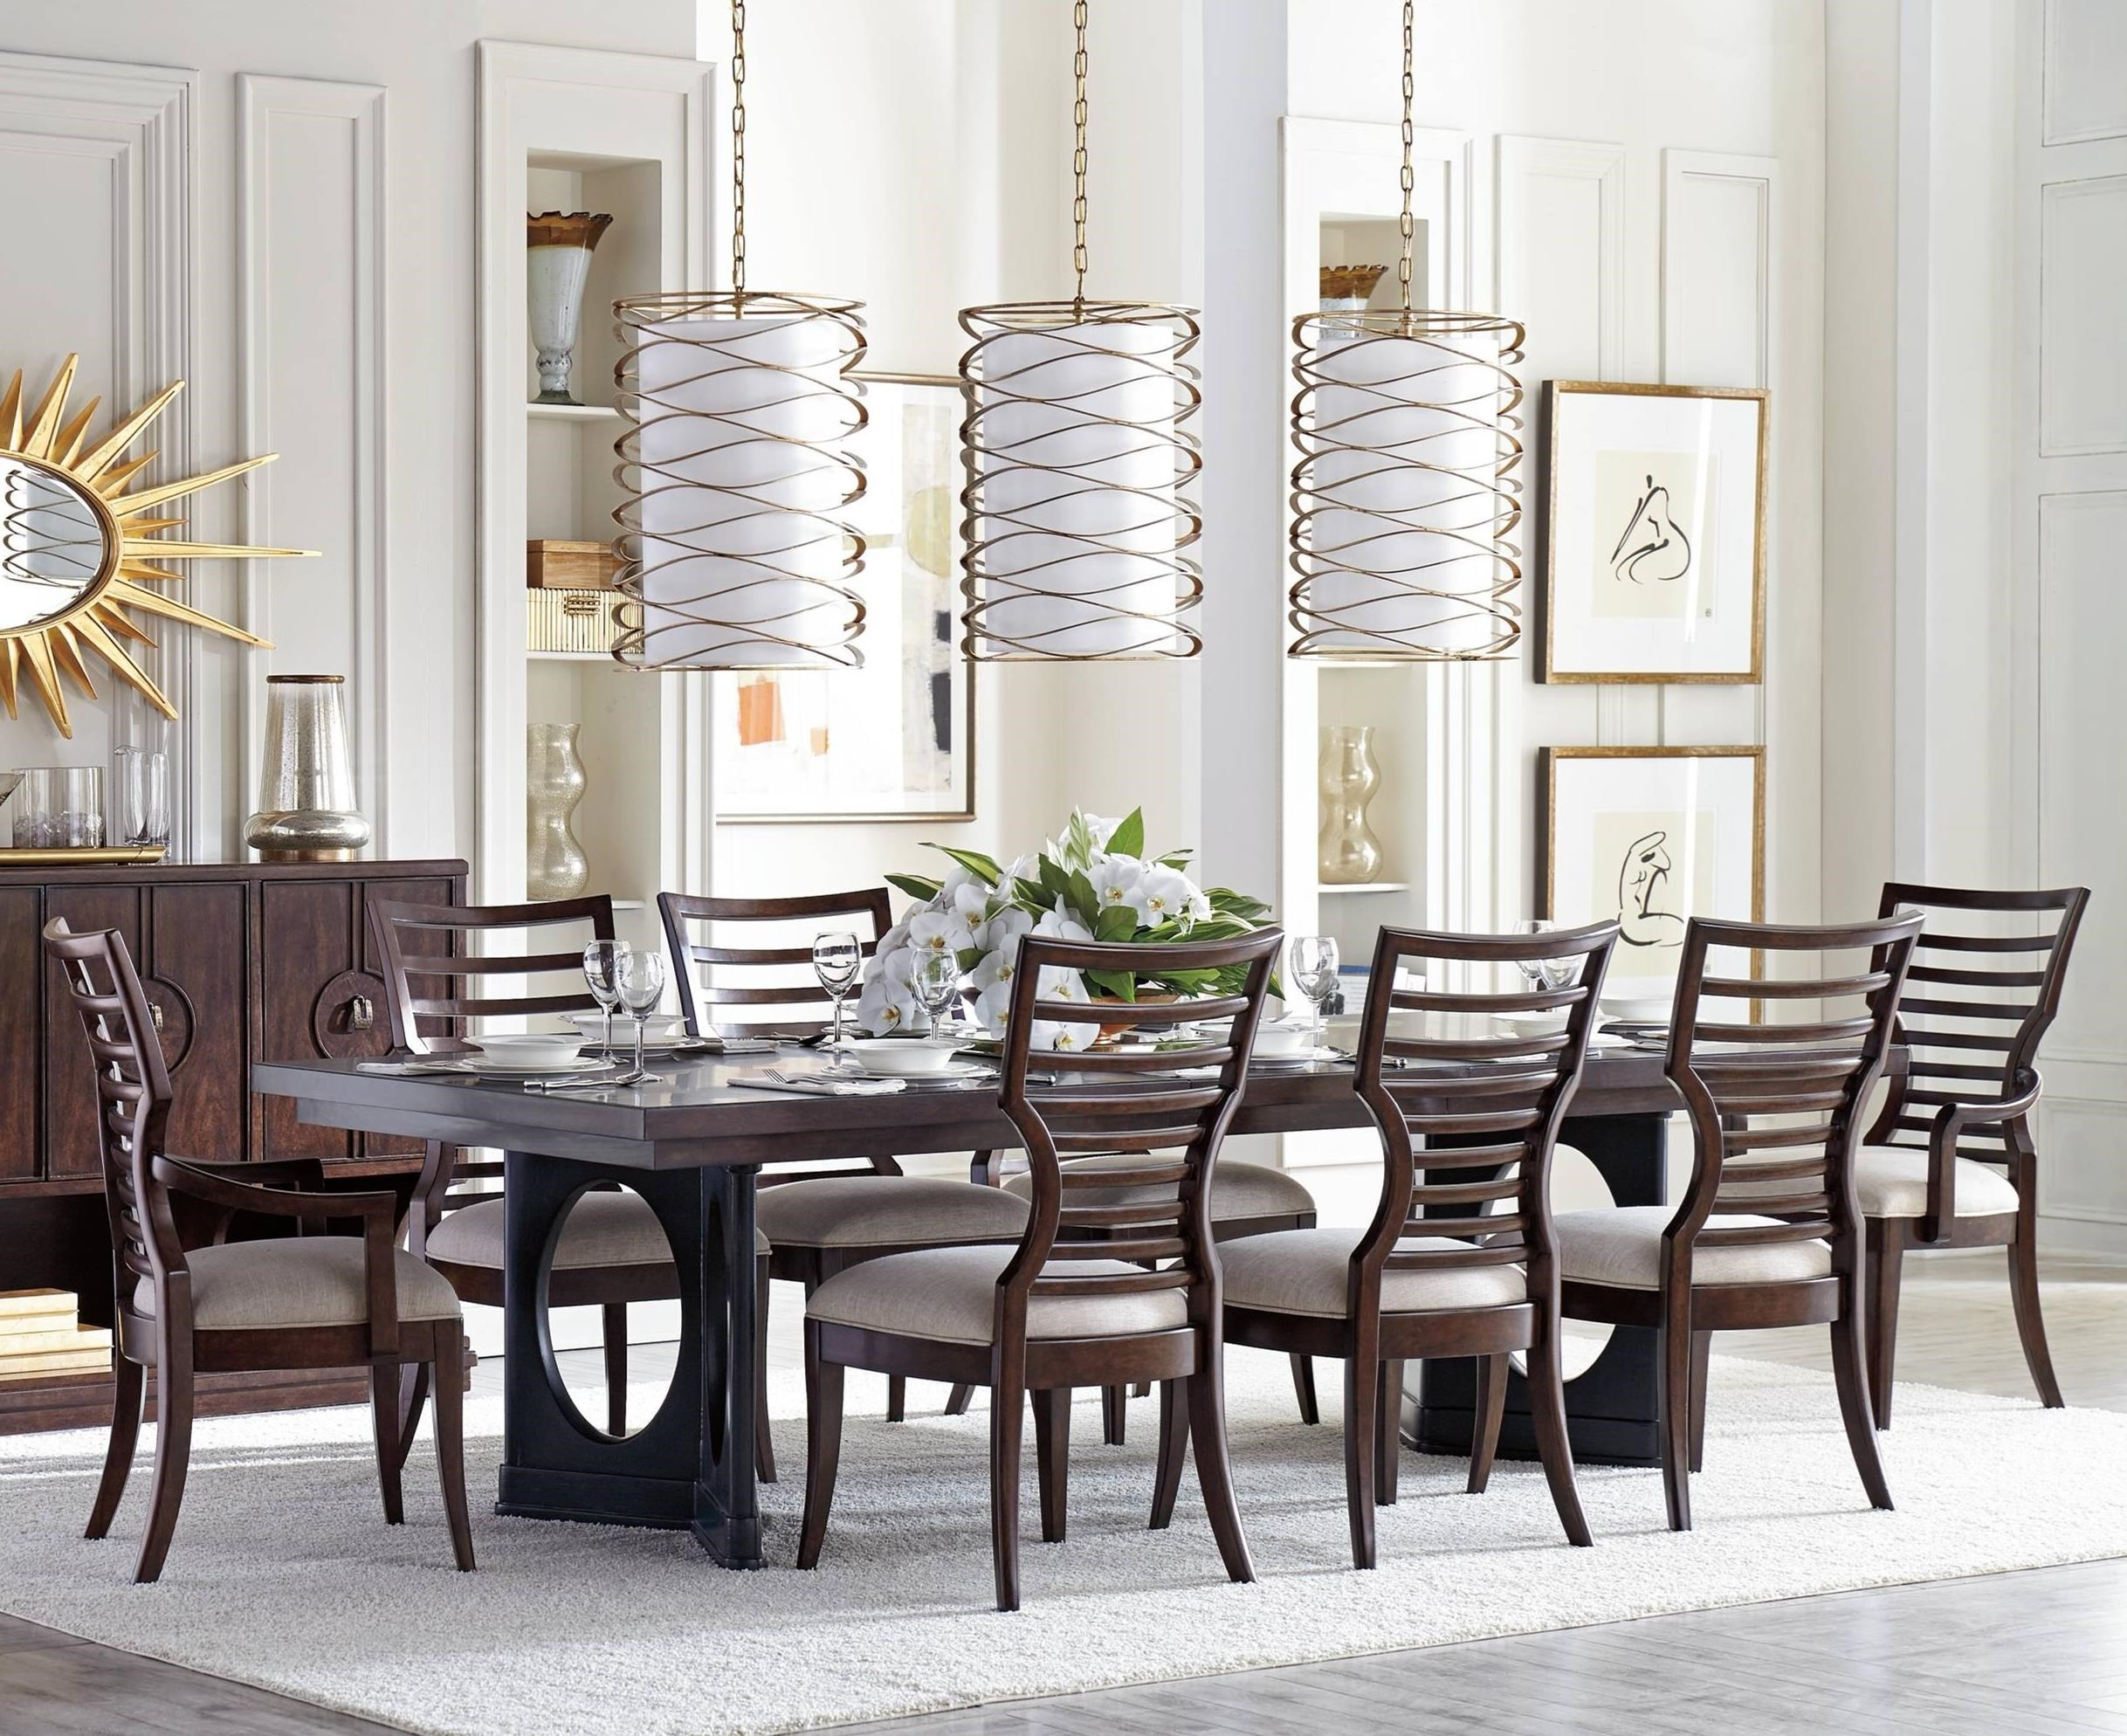 Stanley furniture virage 9 piece double pedestal dining for 11 piece dining table set